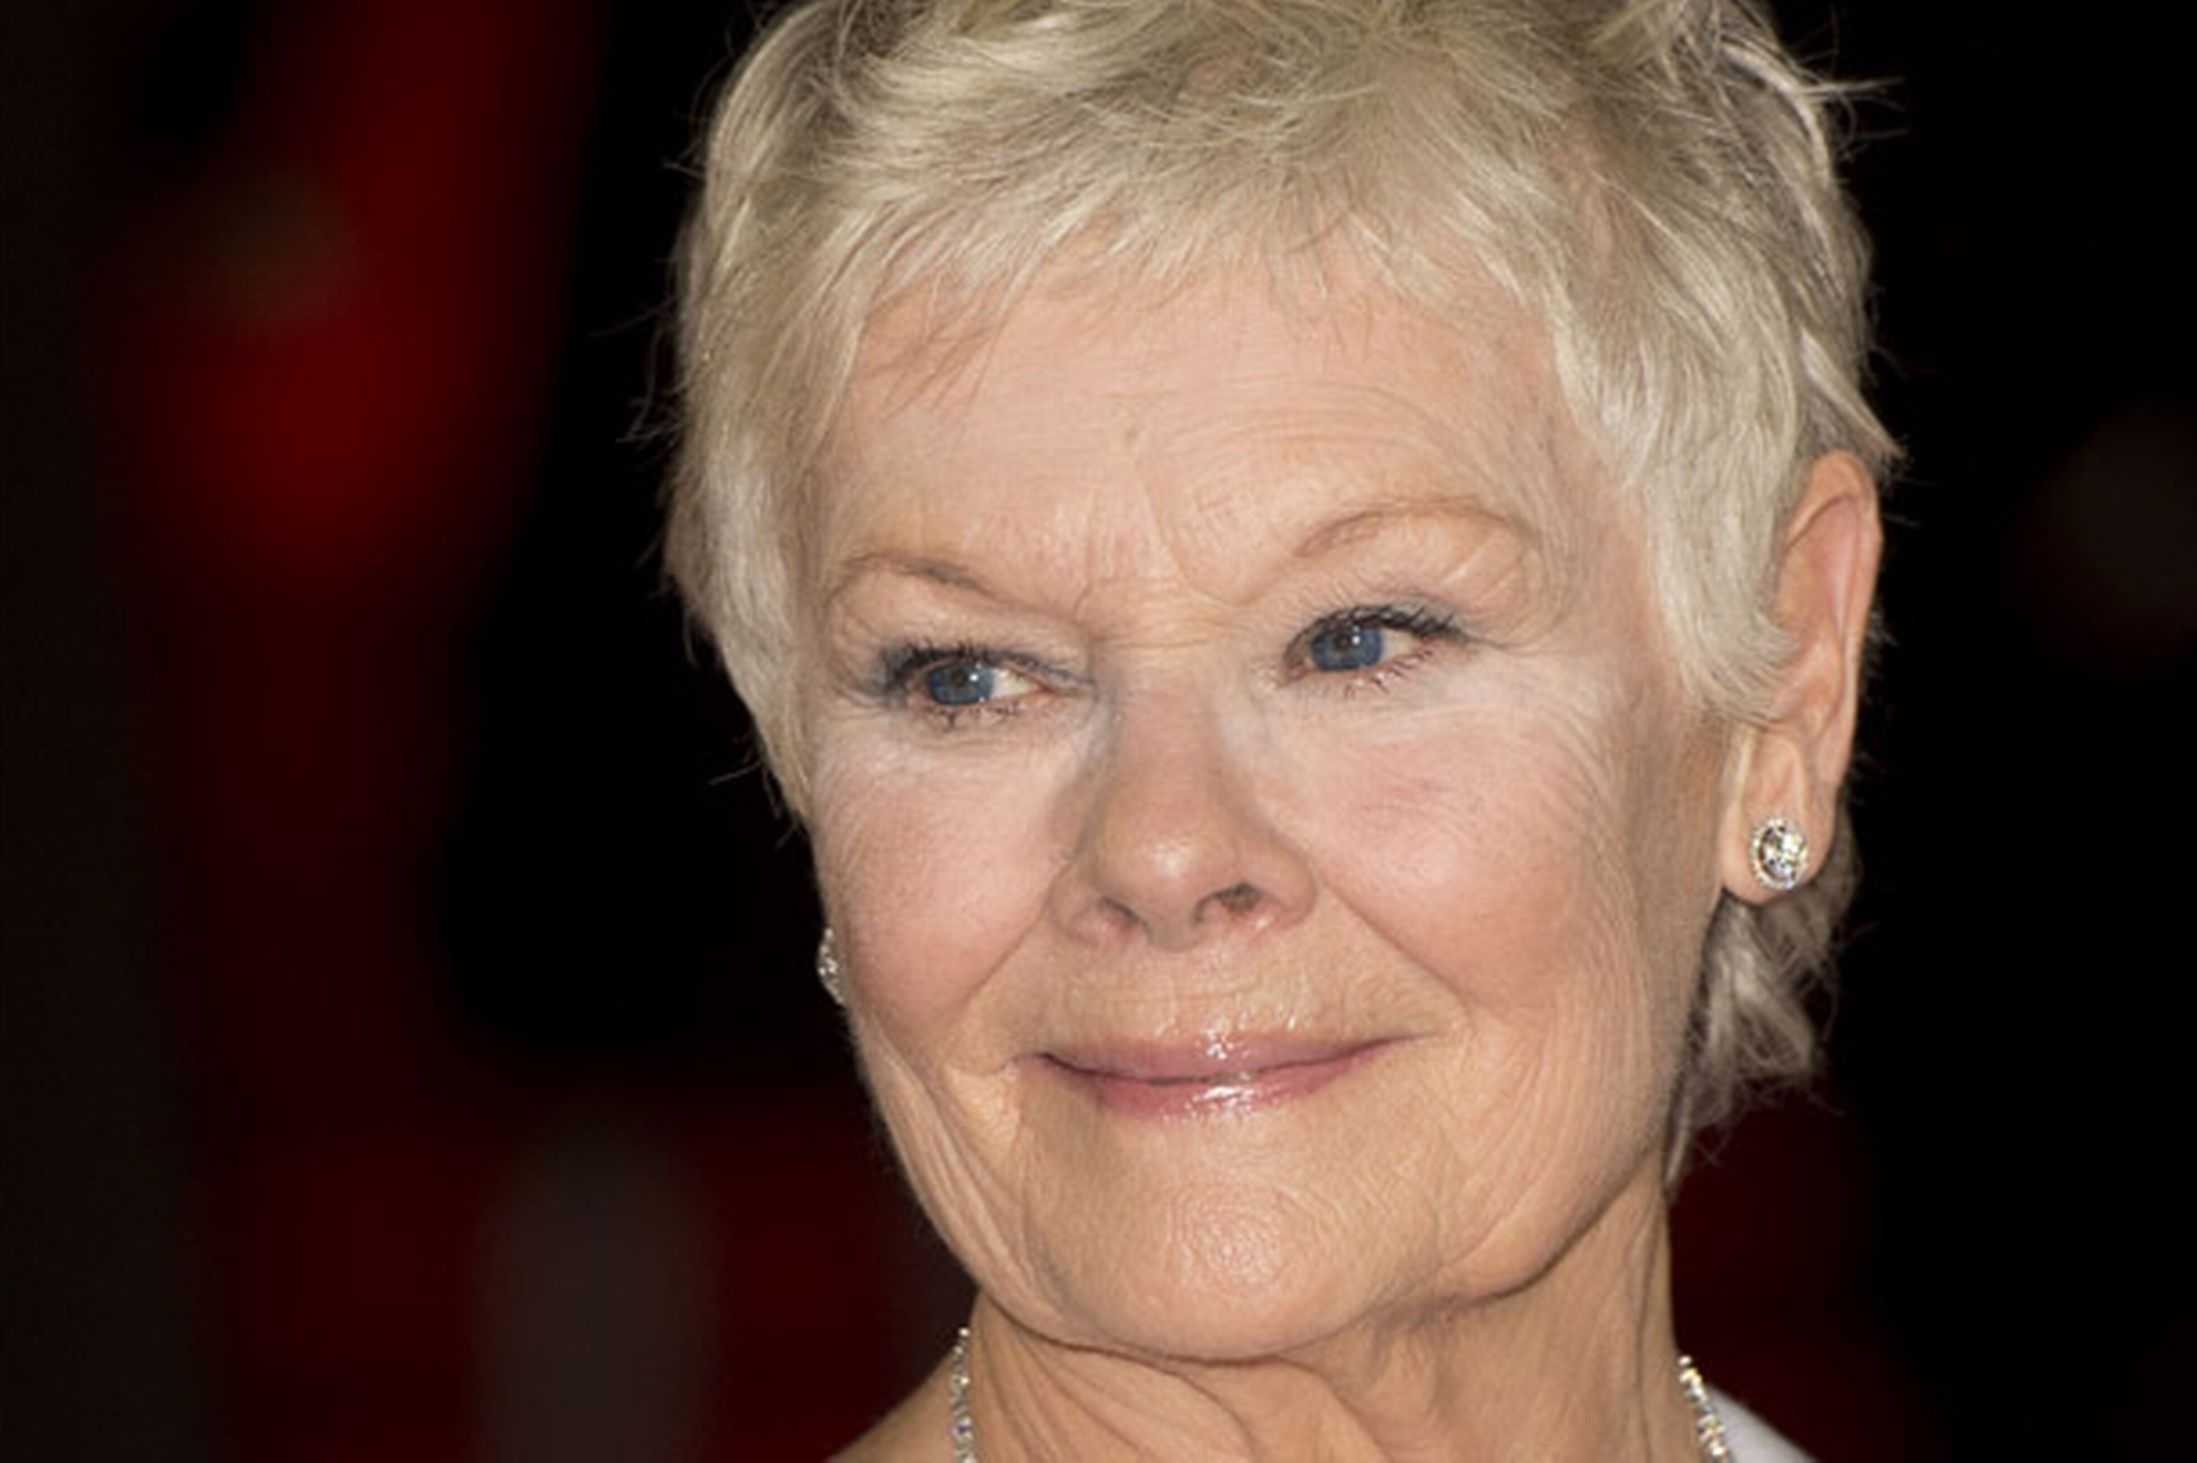 Steve McQueen, <b>Judi Dench</b>, Amy Poehler and Game of Thrones Showrunners to <b>...</b> - judidench